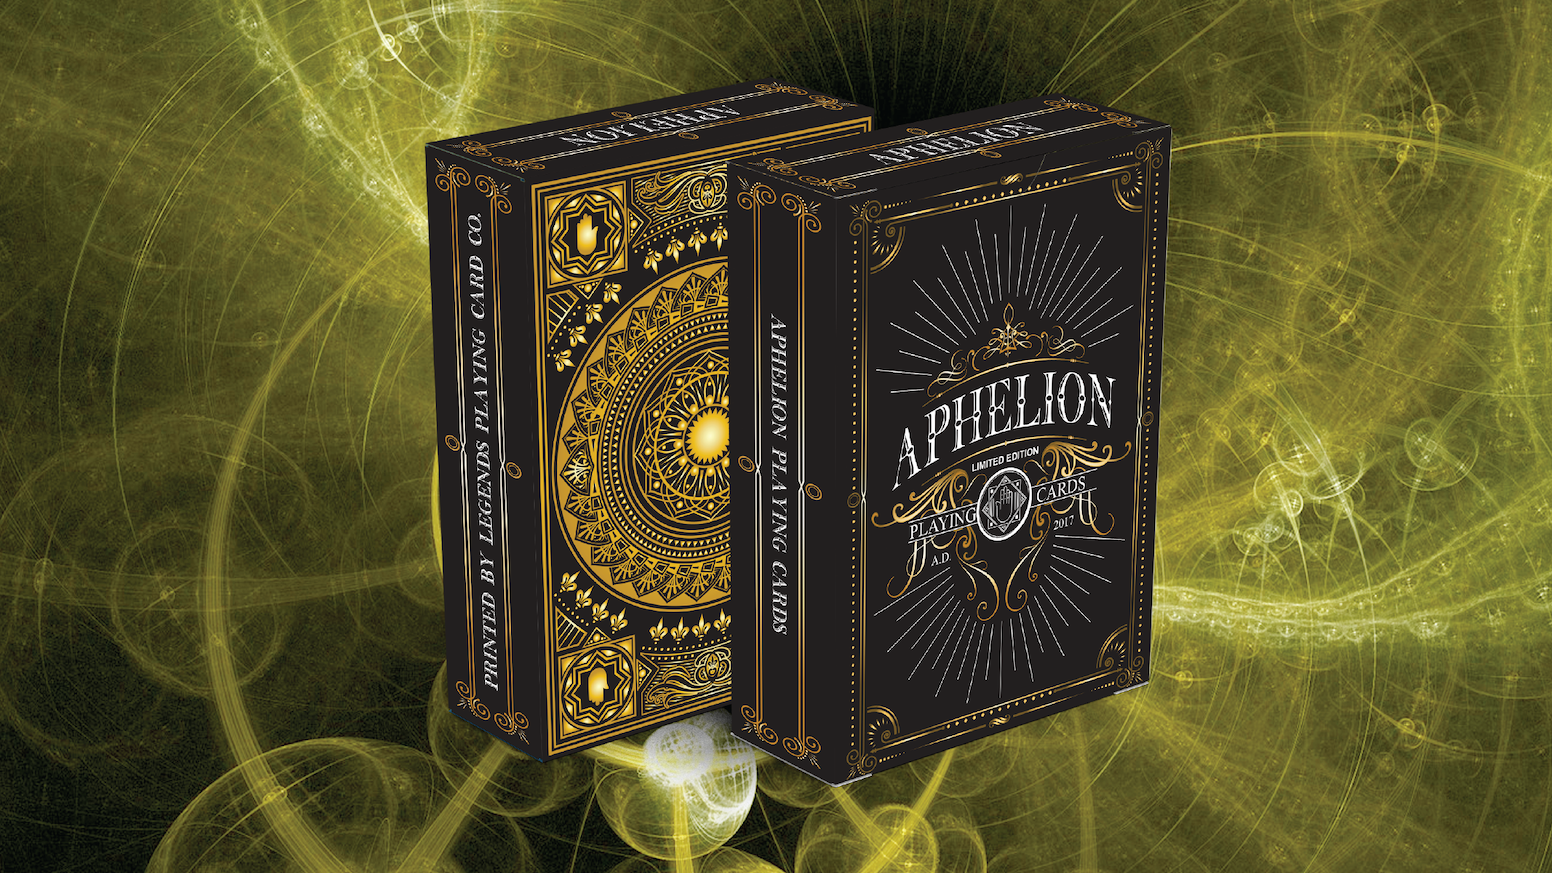 Black limited edition of Aphelion playing cards. Deck made for collectors and magicians. Printed by LPCC on classic finish (Taiwan)